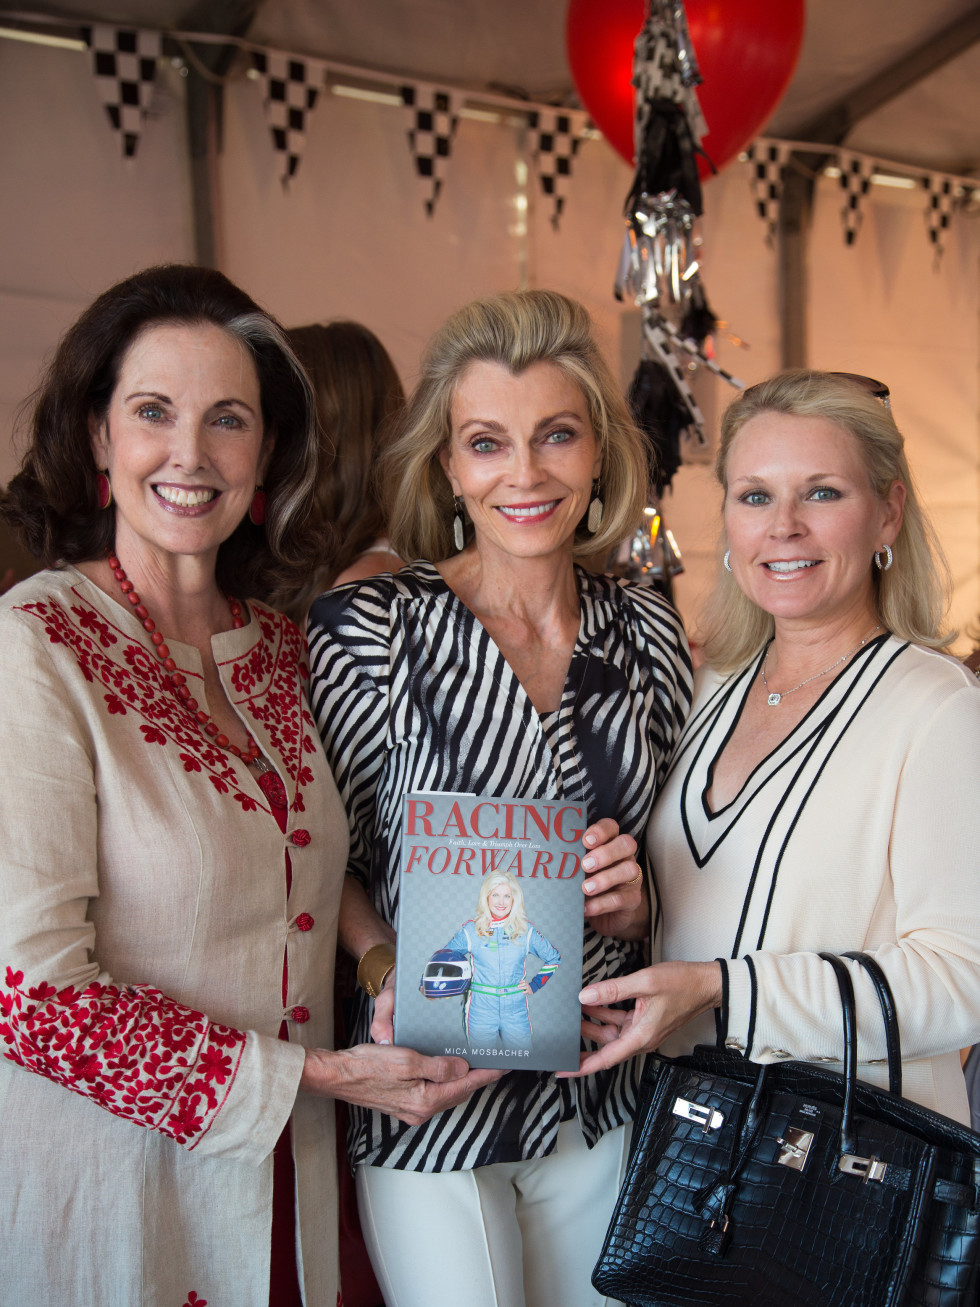 Houston, Mica Mosbacher Racing Forward event, October 2015, Christina Girard, Alice Burguieres, Mindy Hildebrand